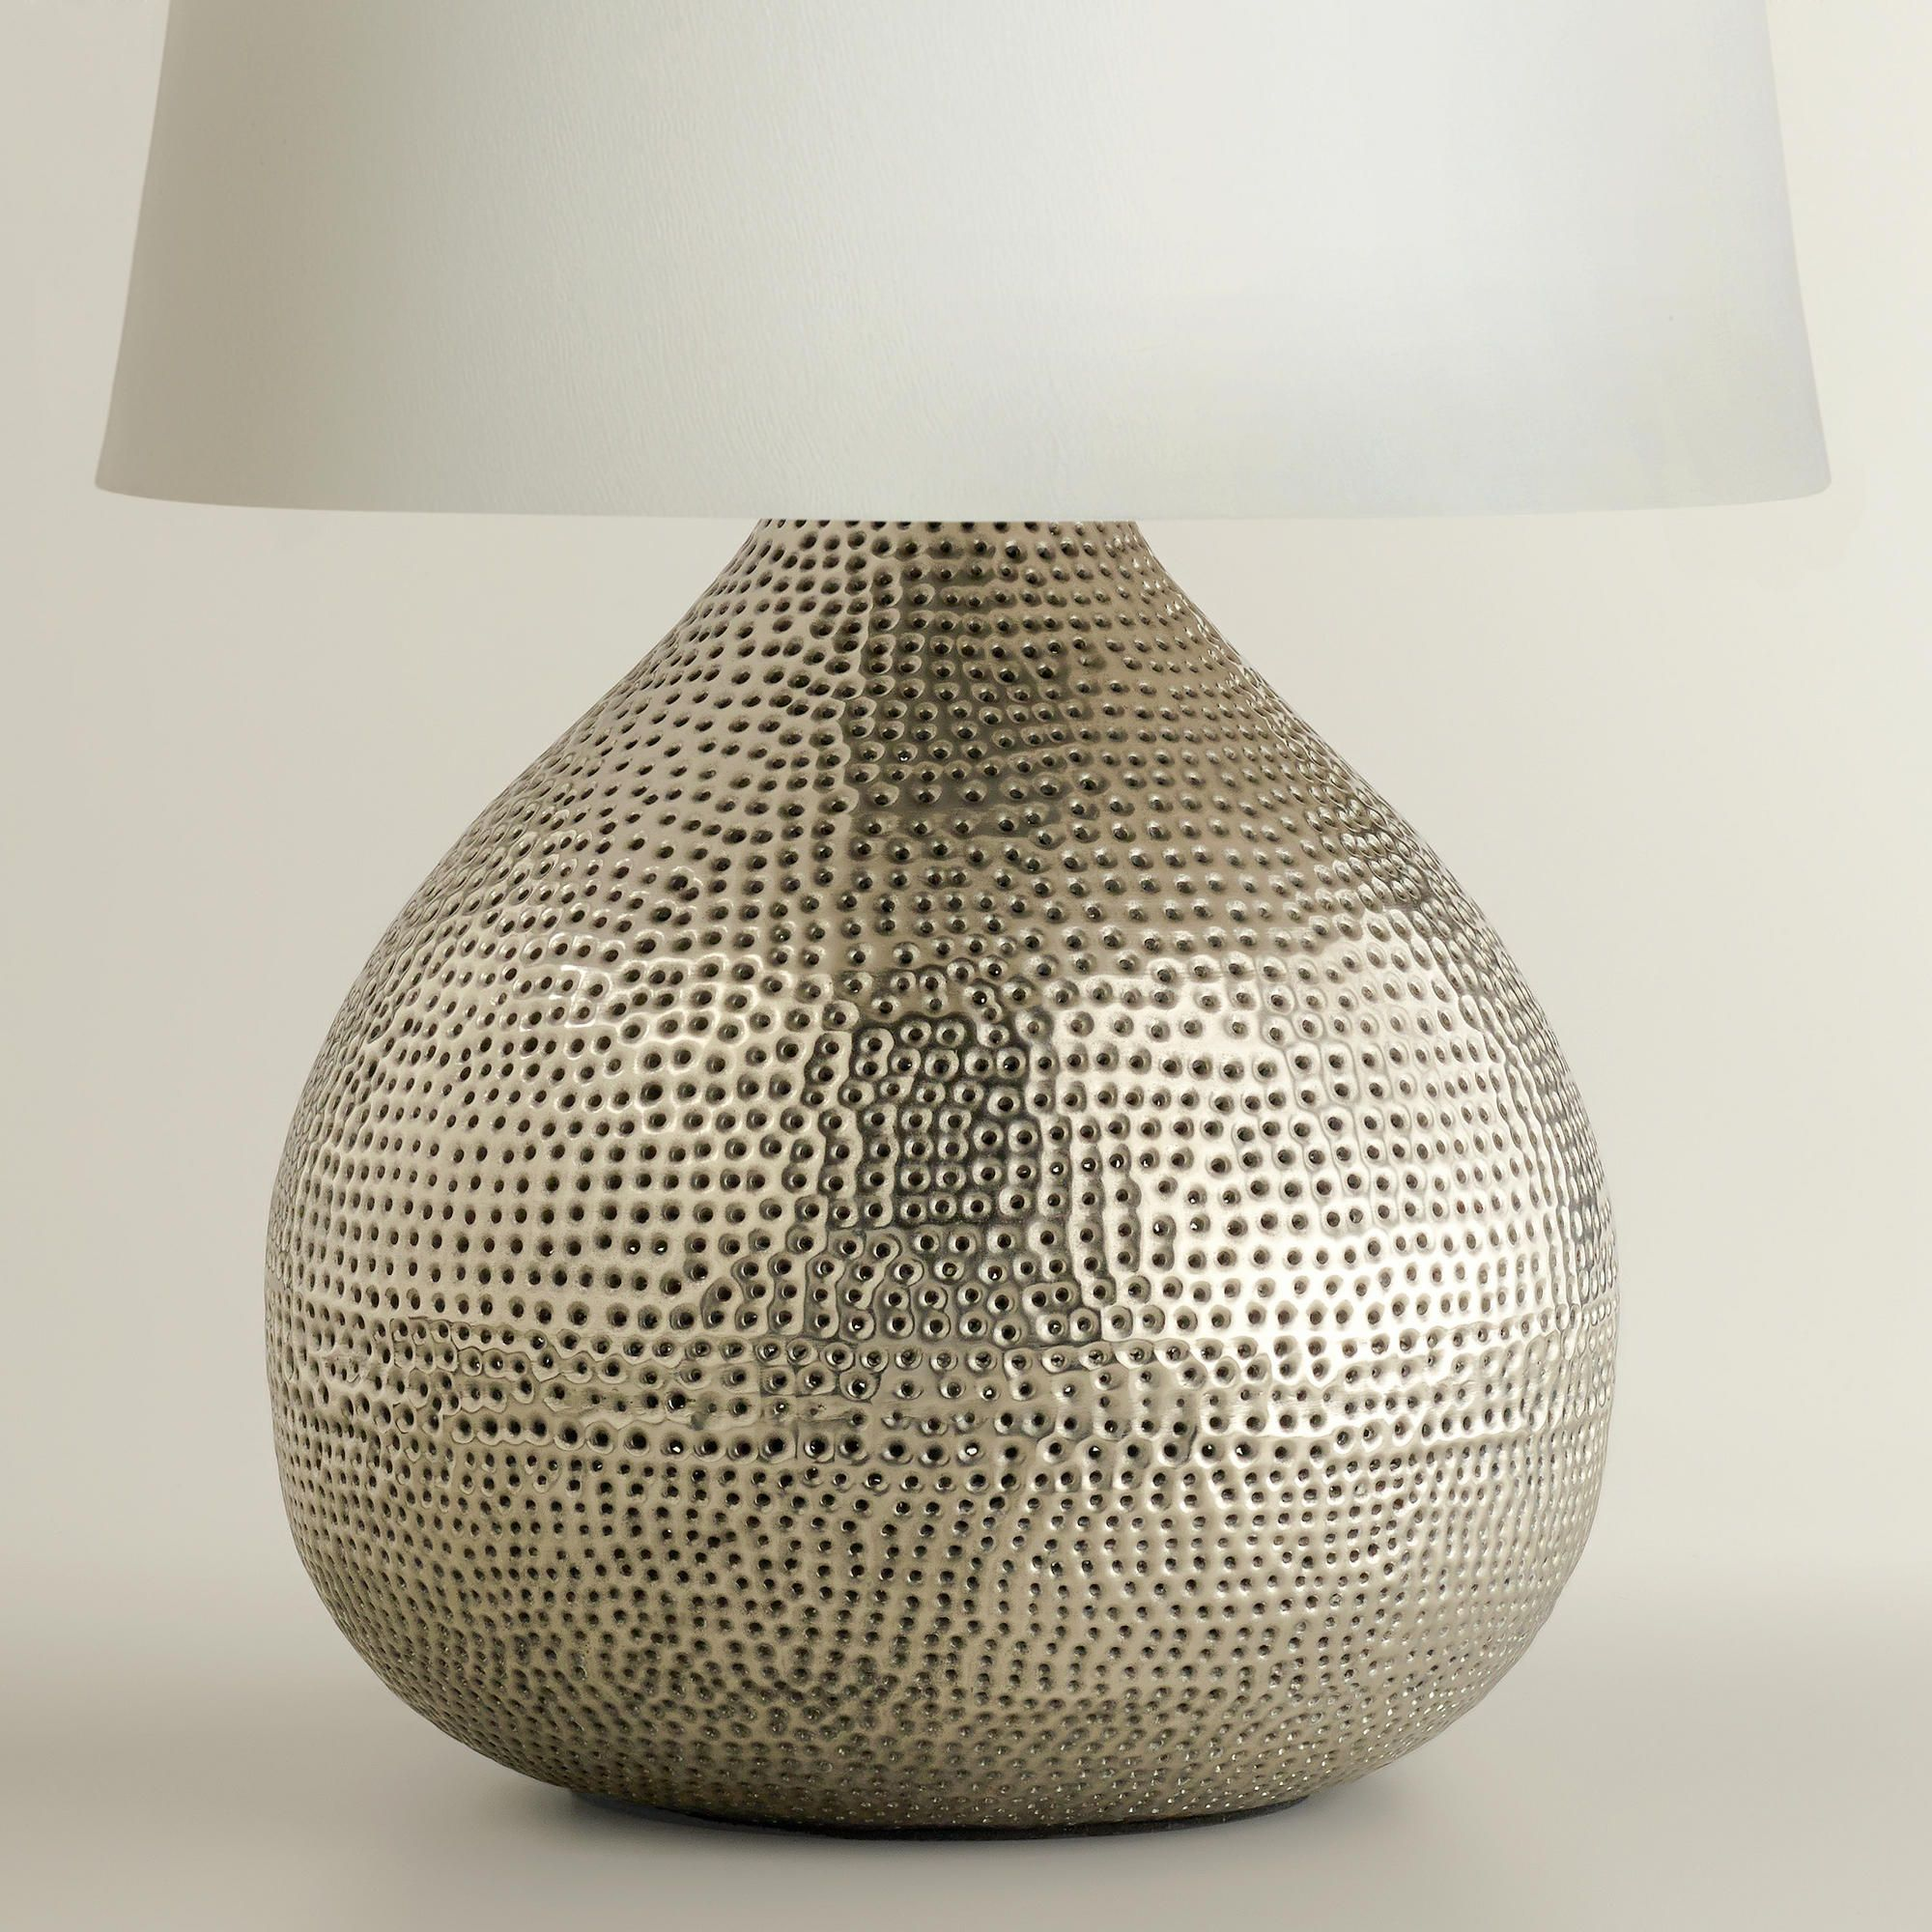 Pewter prema punched metal table lamp base metal table lamps pewter prema punched metal table lamp base geotapseo Image collections